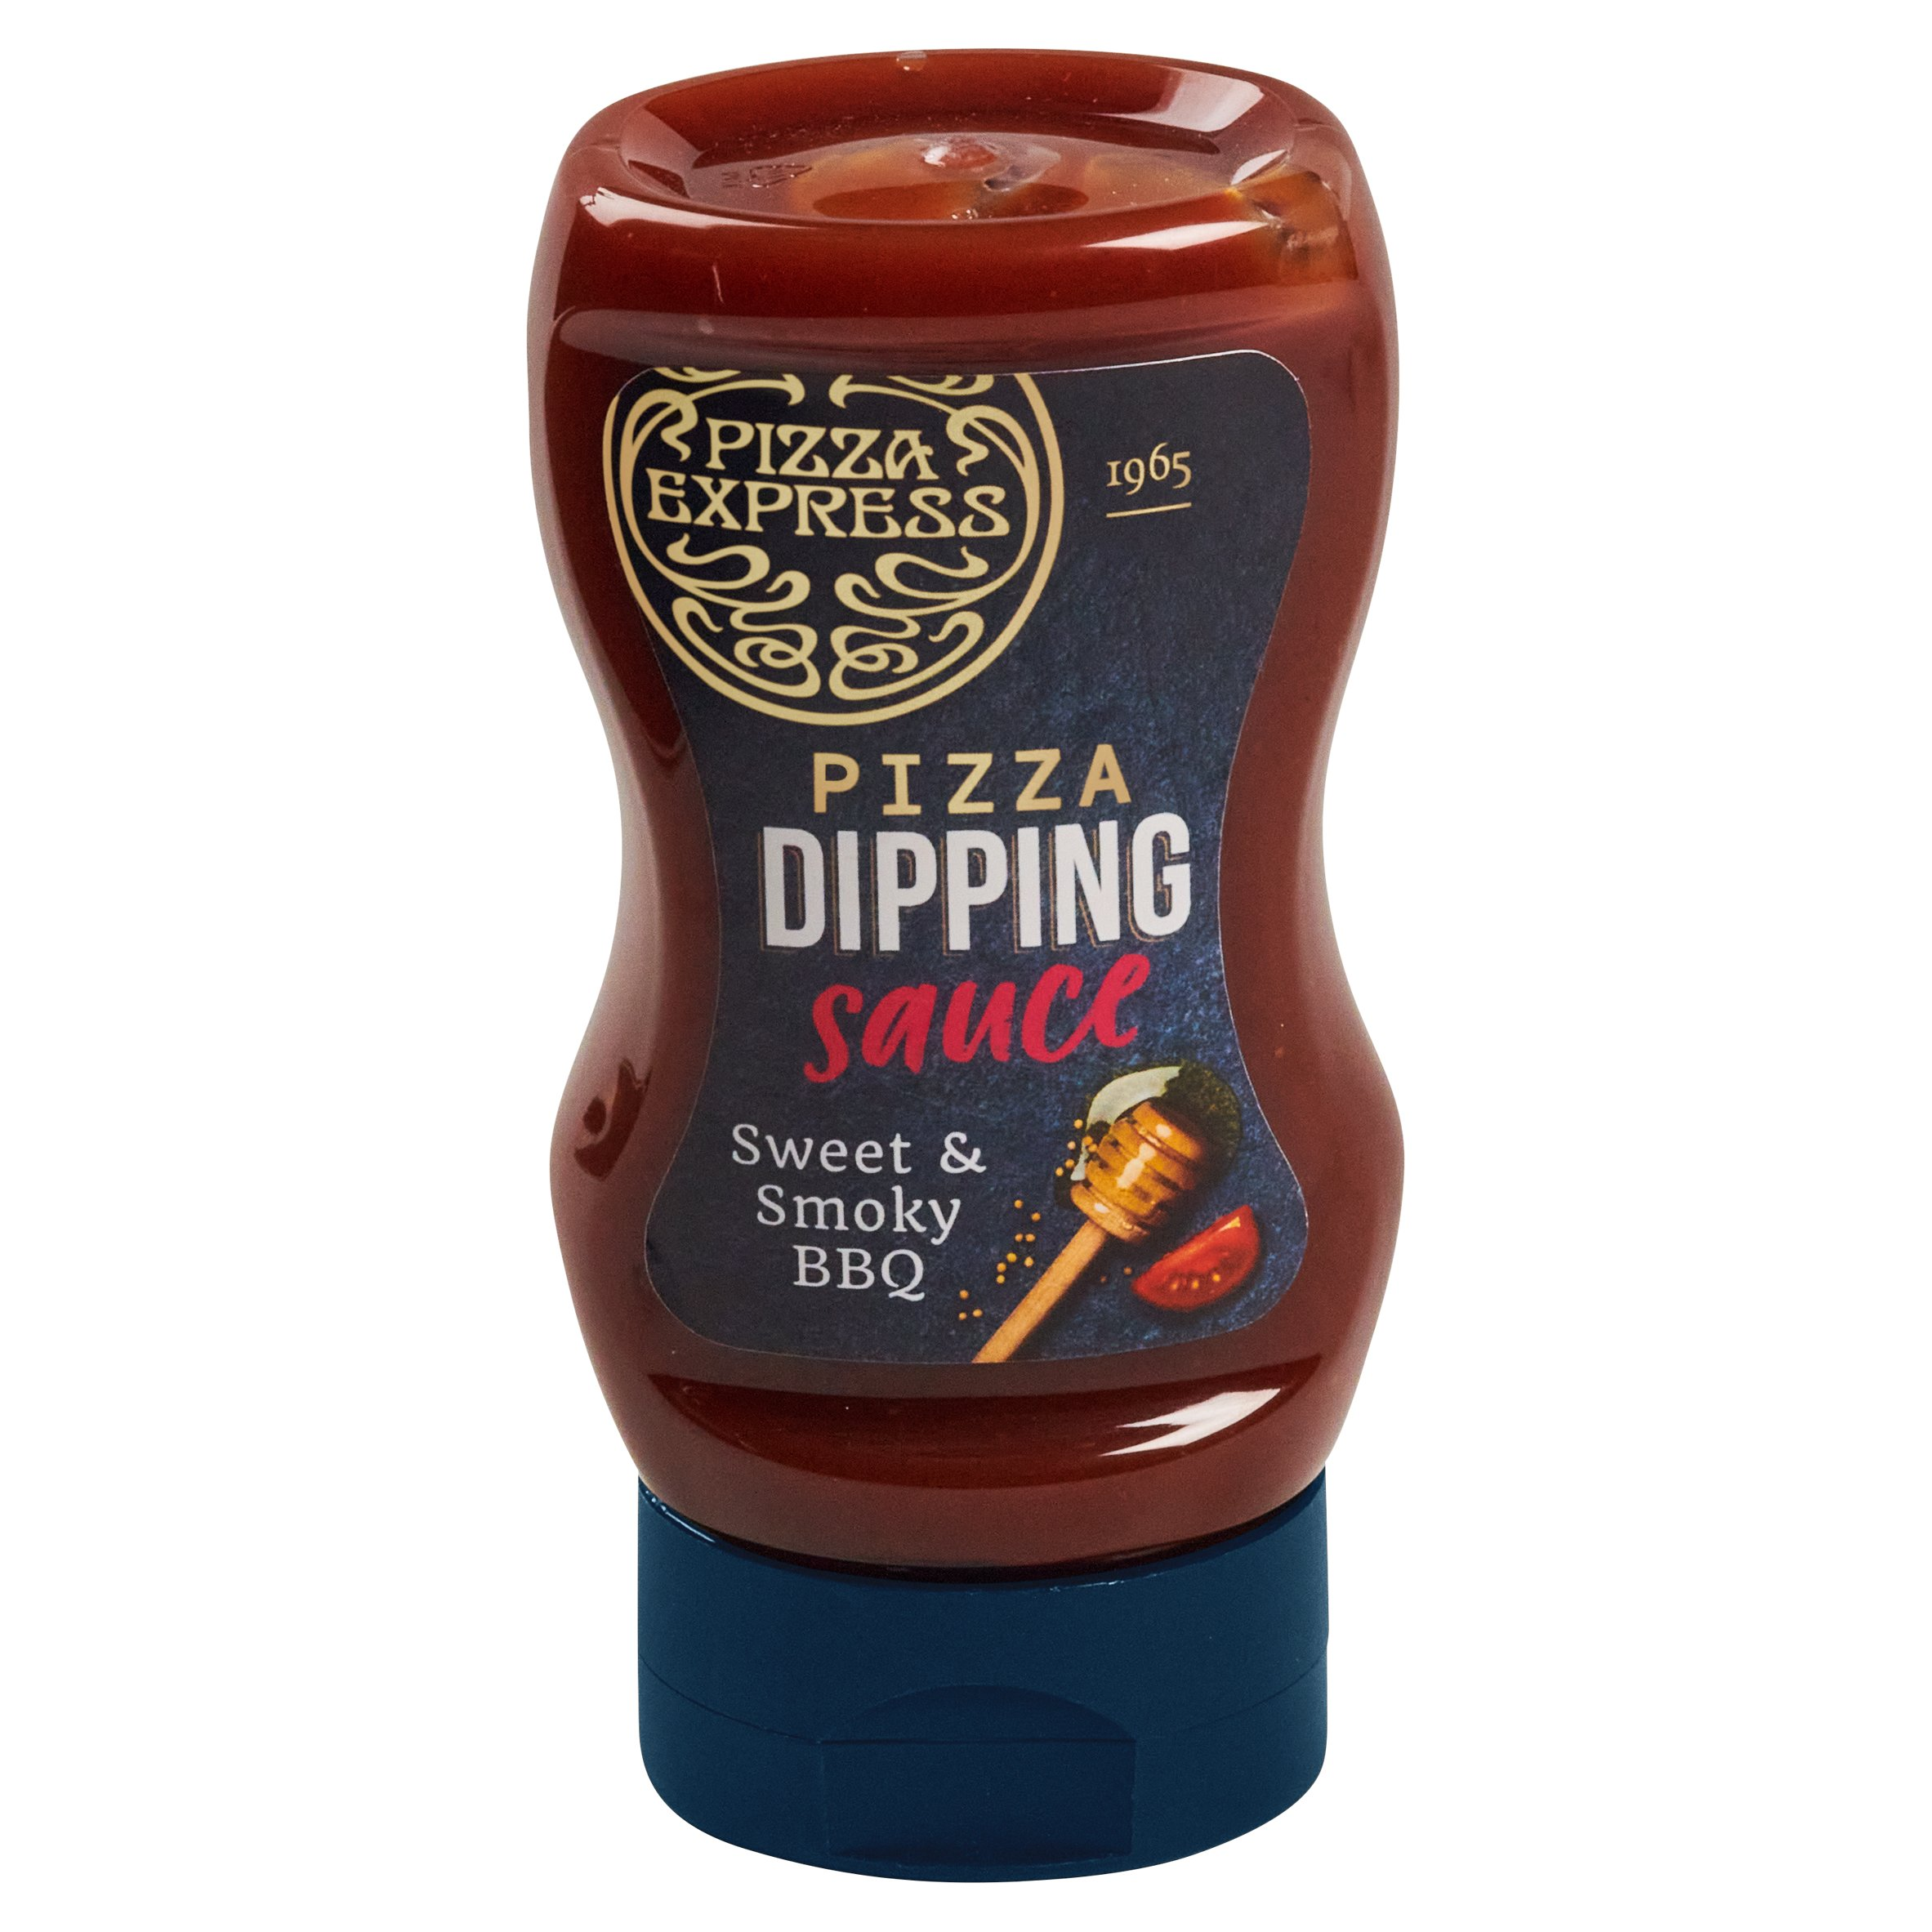 Pizza Express Sweet & Smoky Bbq Pizza Dipping Sauce 288G